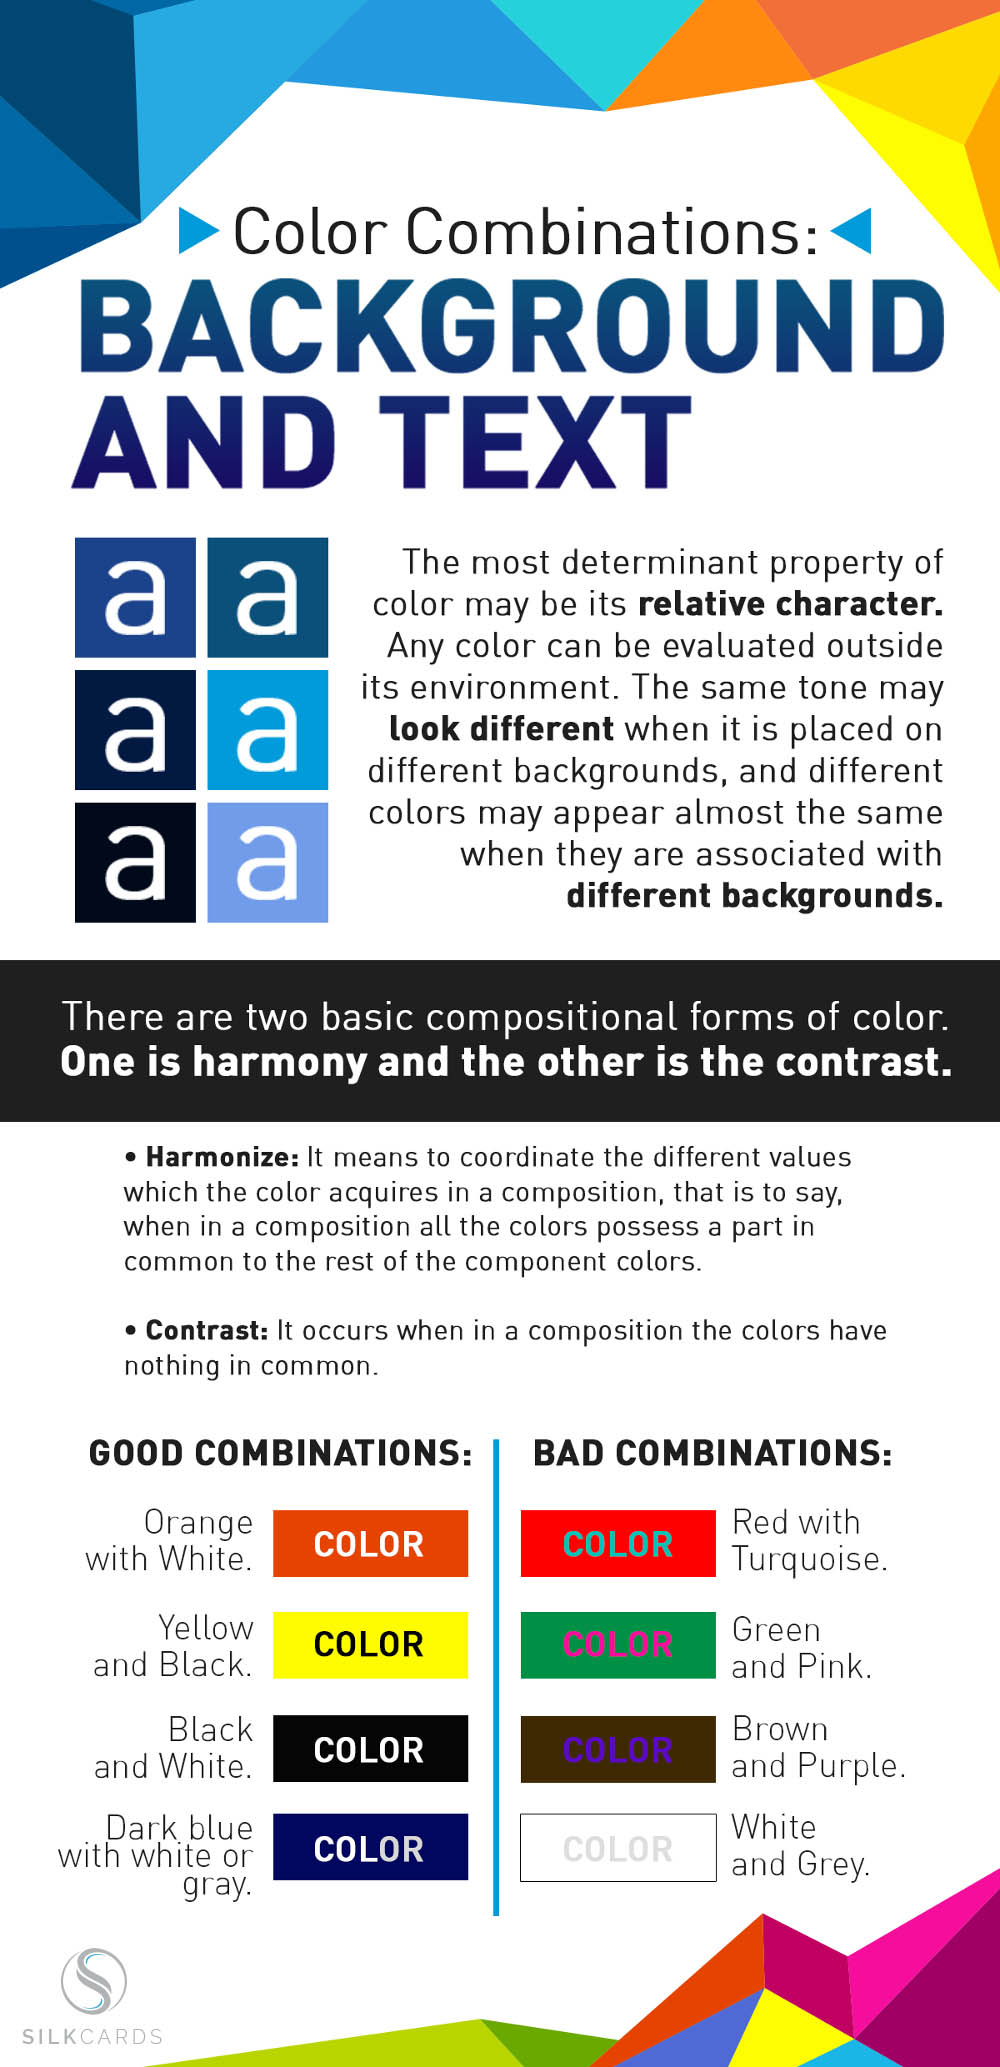 color combination infographic